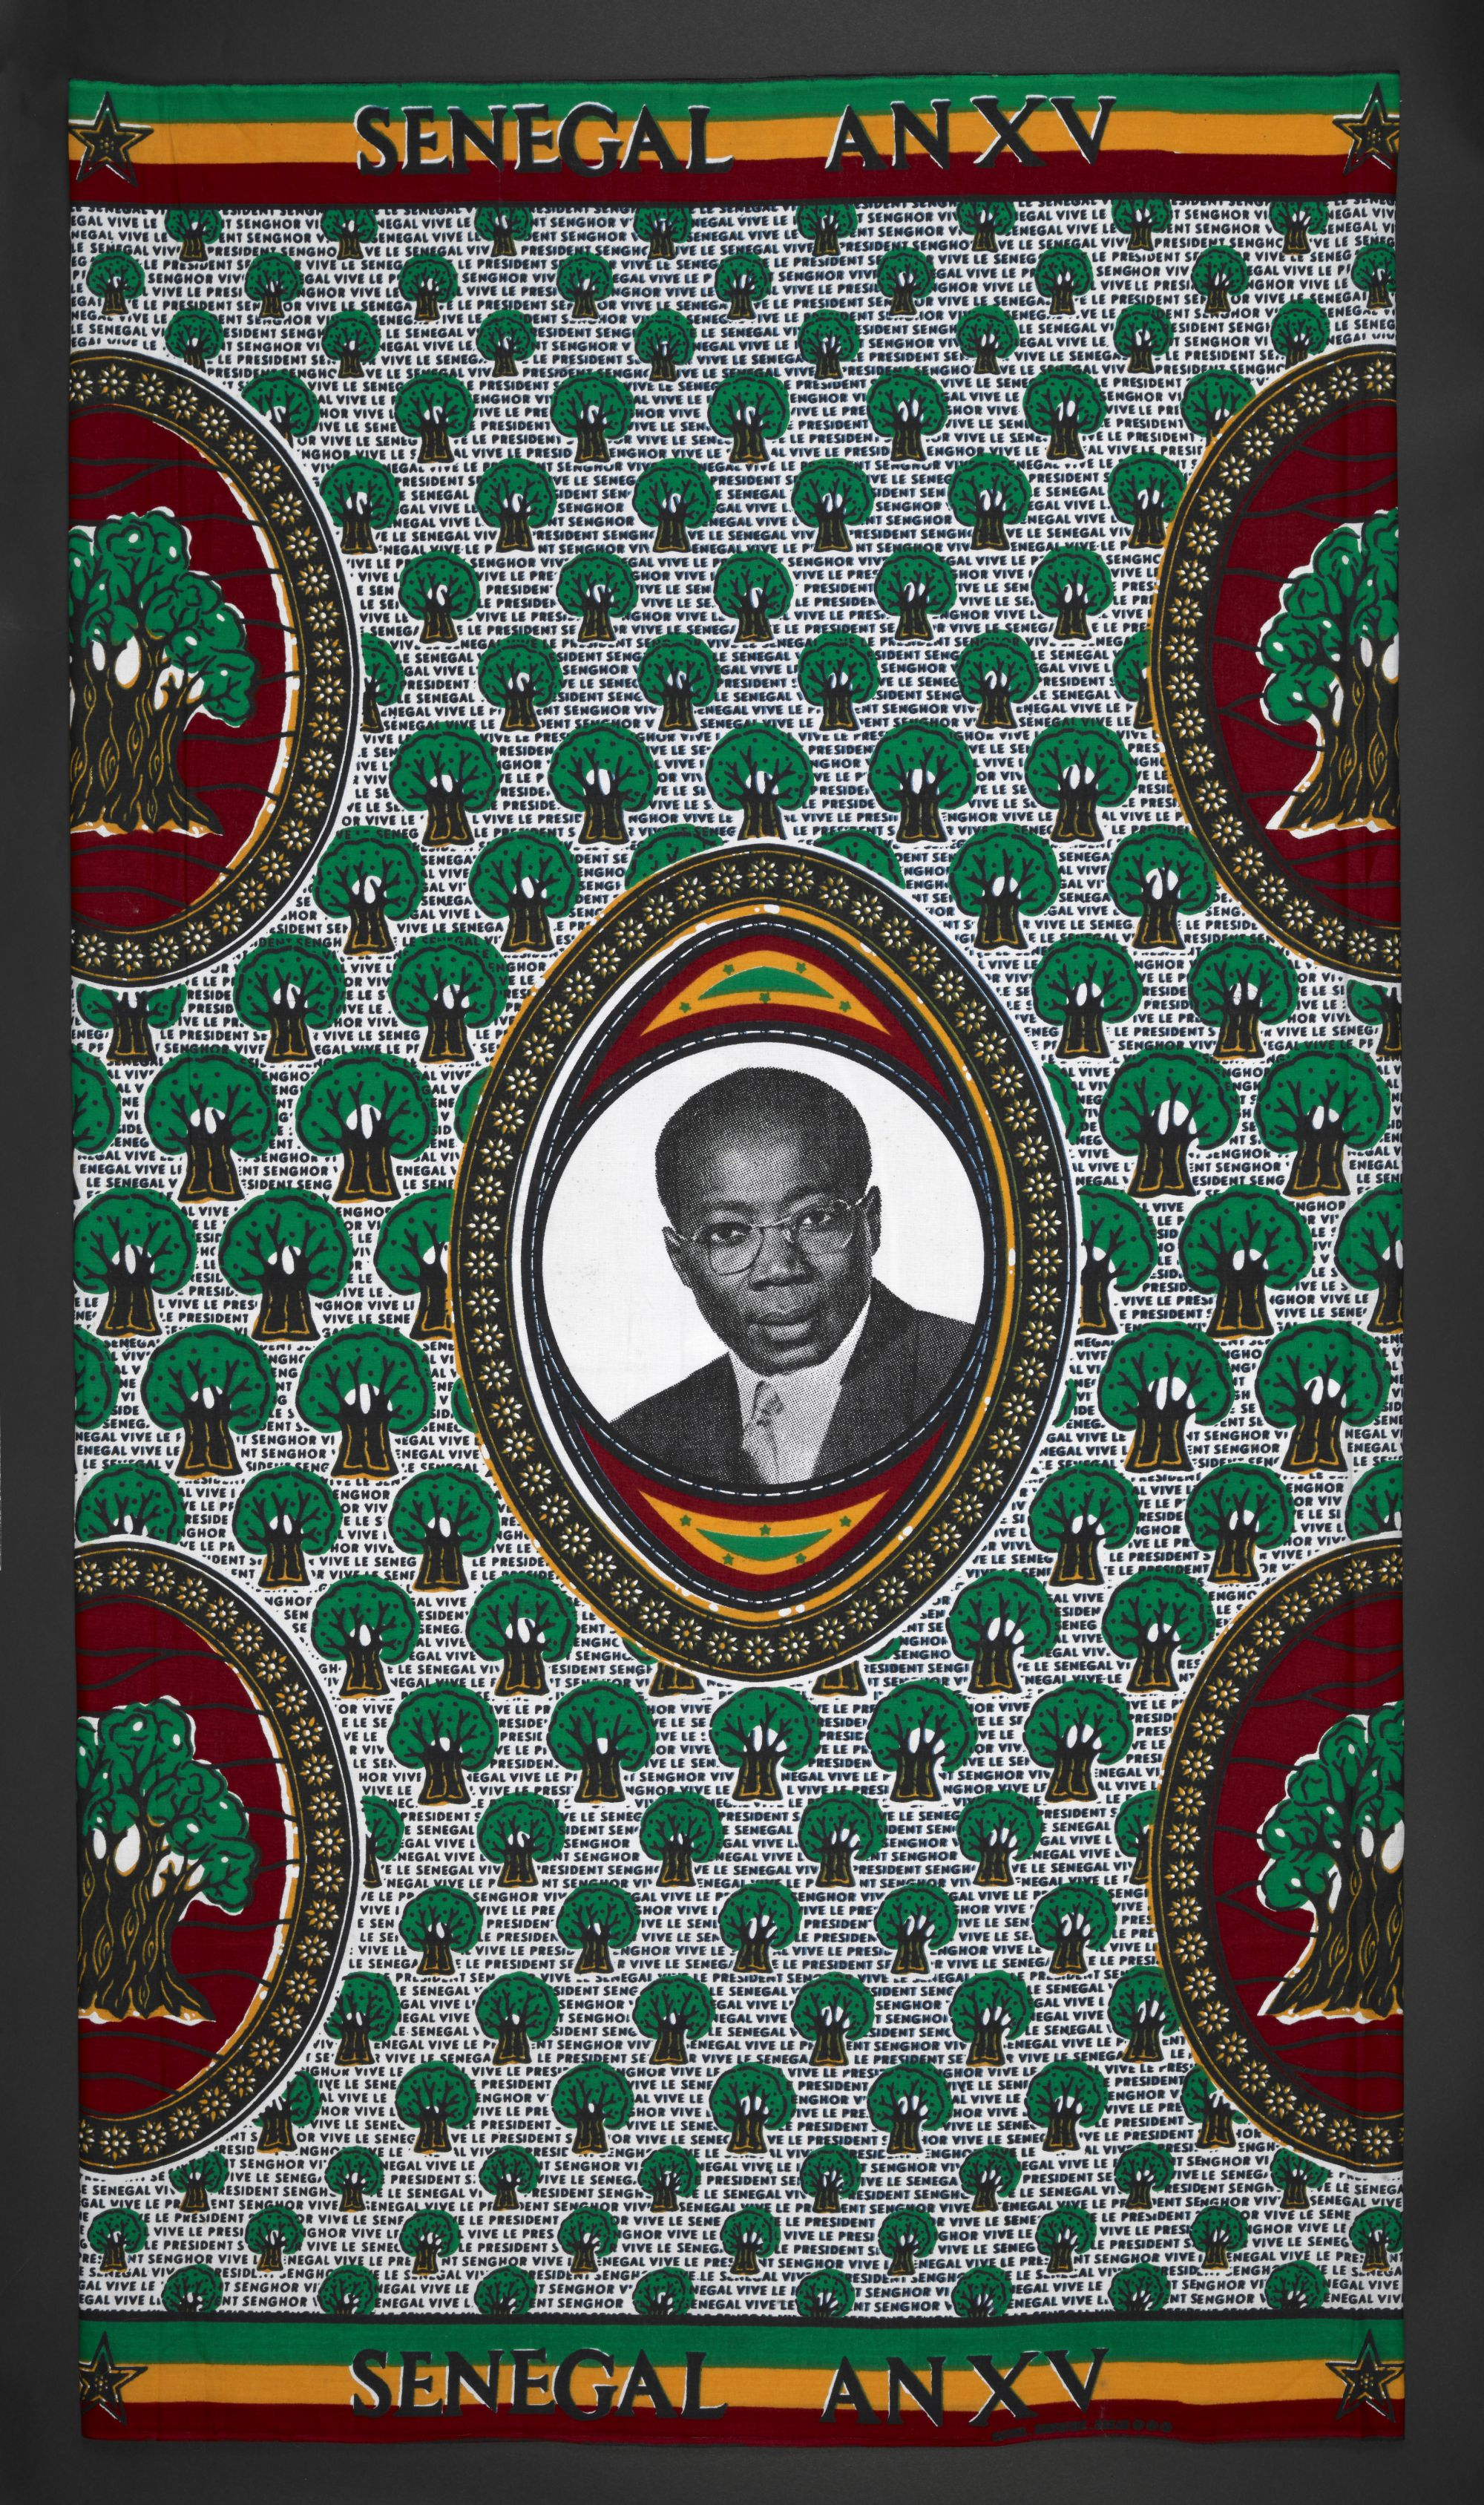 A printed cloth marking 15 years of Senegal's independence in 1975. It shows Léopold Sédar Senghor (1906–2001), the Senegalese intellectual, poet, politician and president (1960–80).